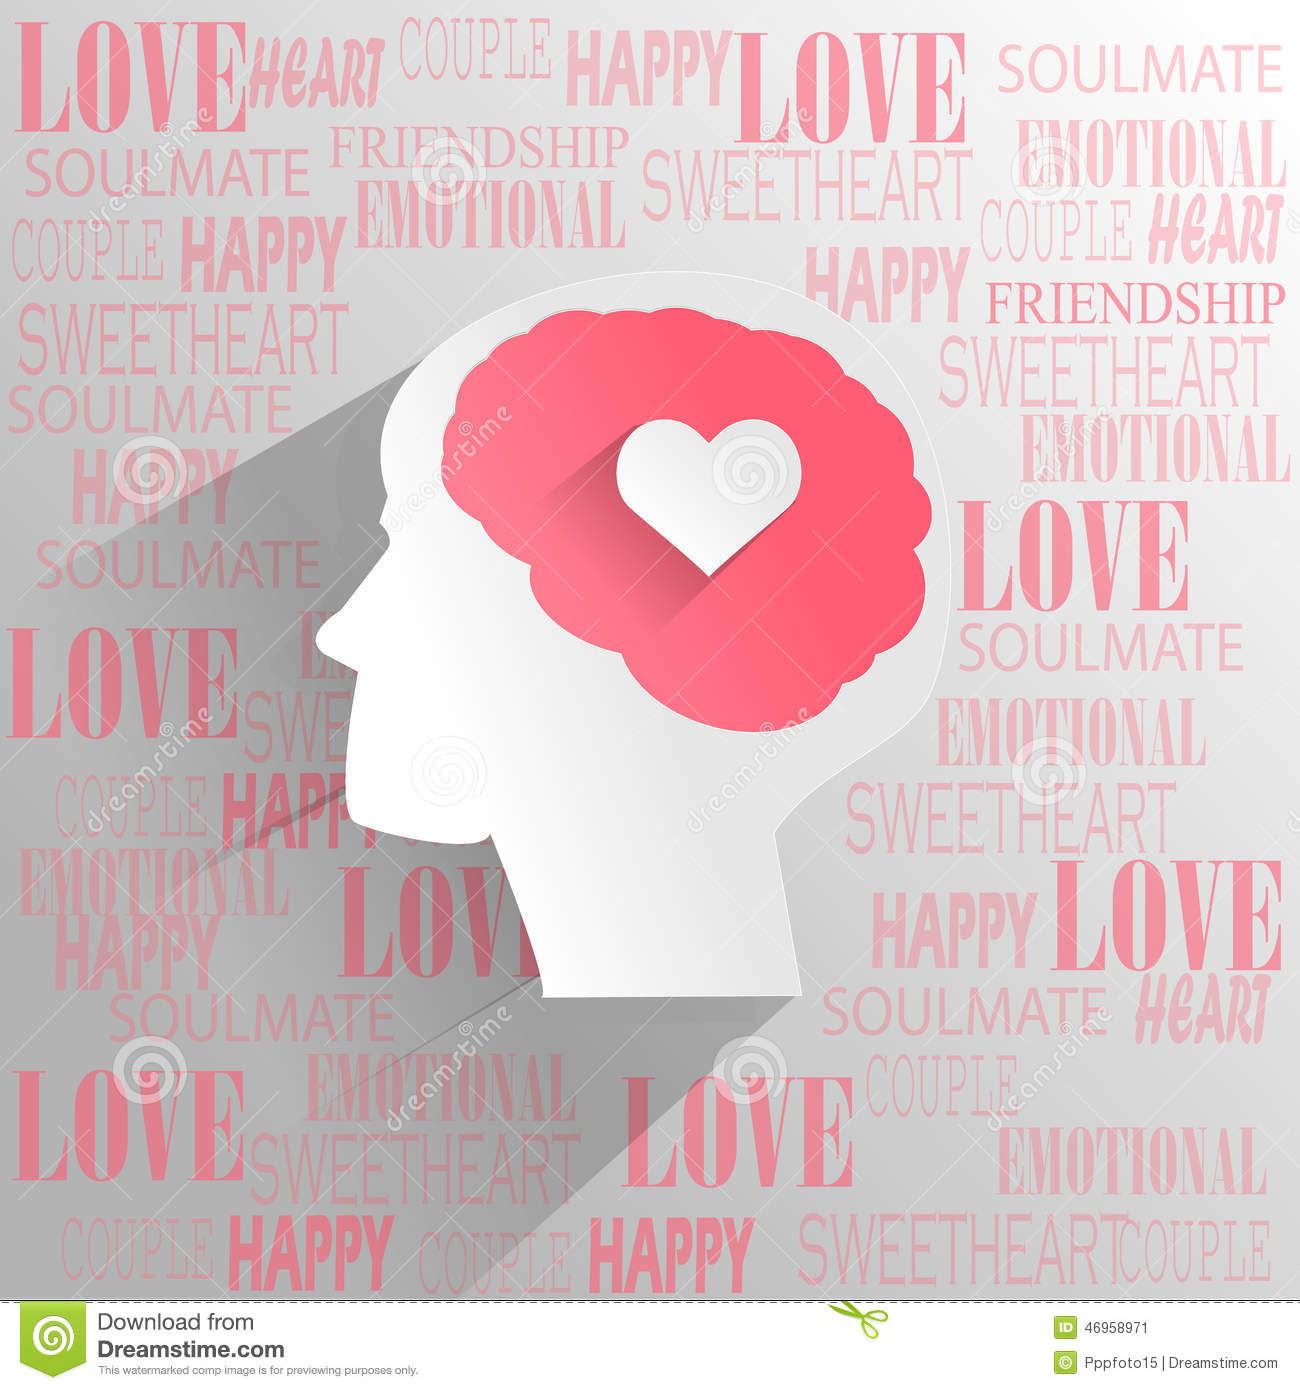 Human Brain With Love Emotion Thinking Stock Vector  : human brain love emotion thinking paper cut style 46958971 from www.dreamstime.com size 1300 x 1390 jpeg 169kB